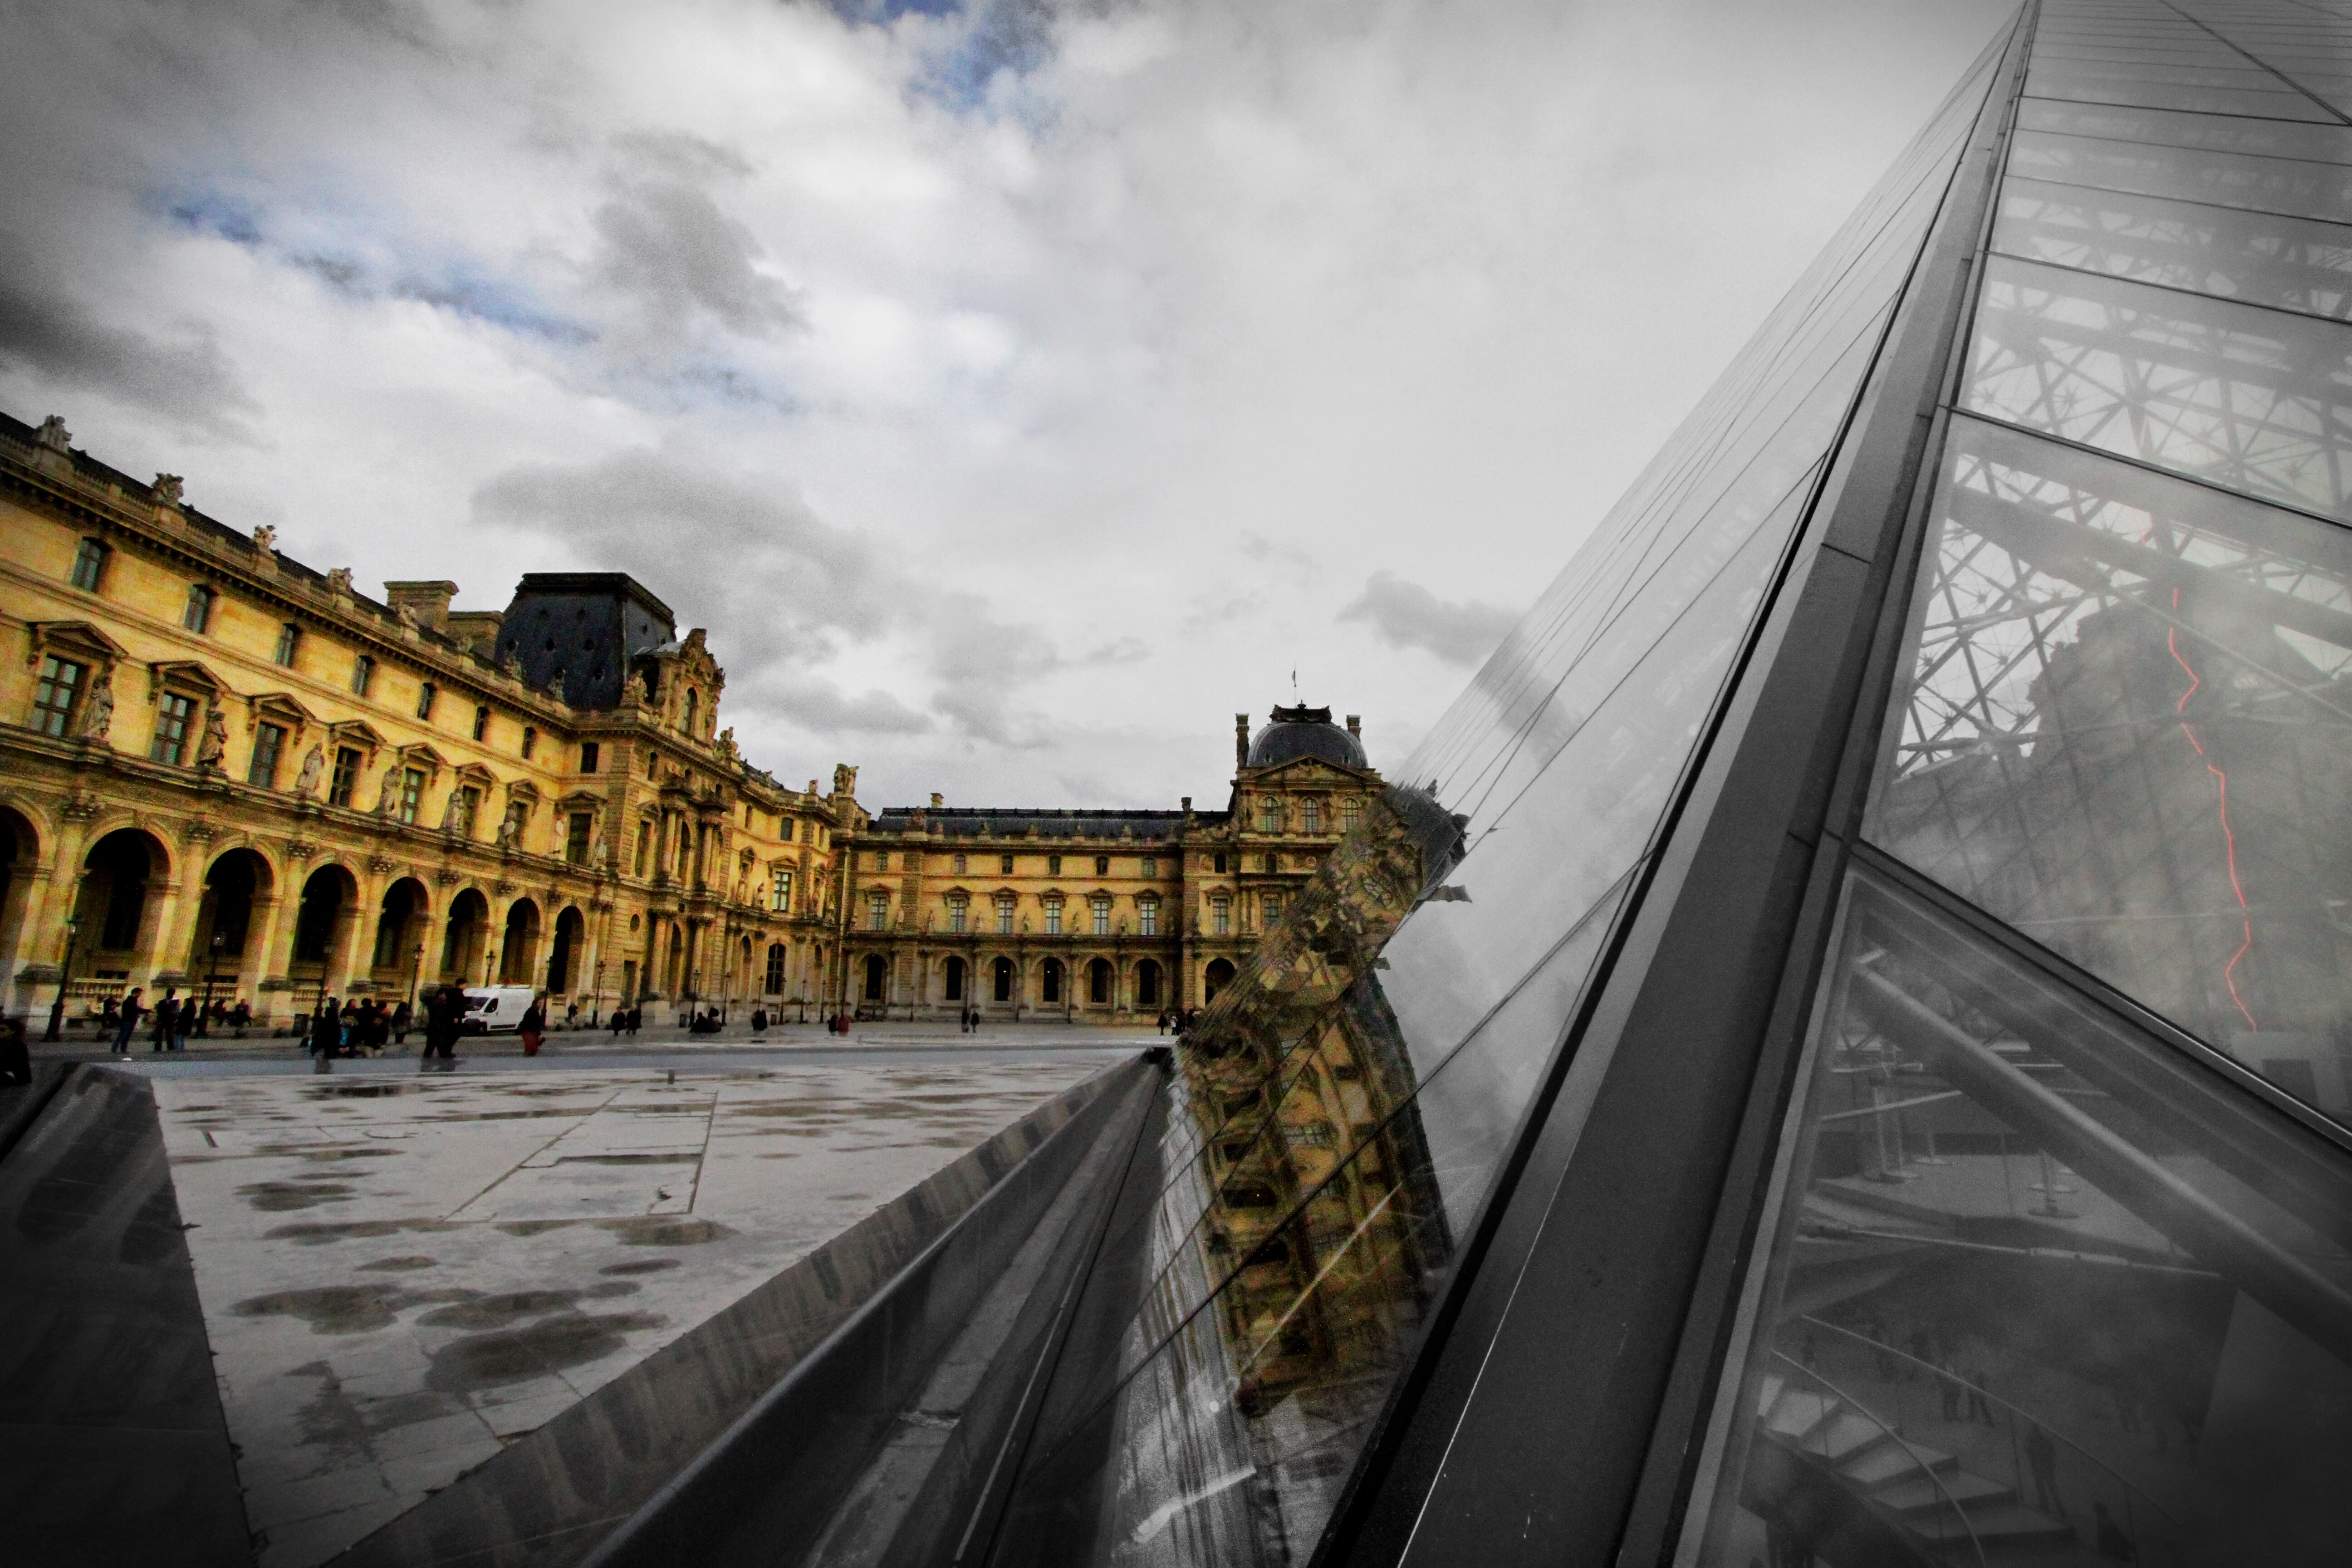 A glass window building, next to a large pavement walking in France.